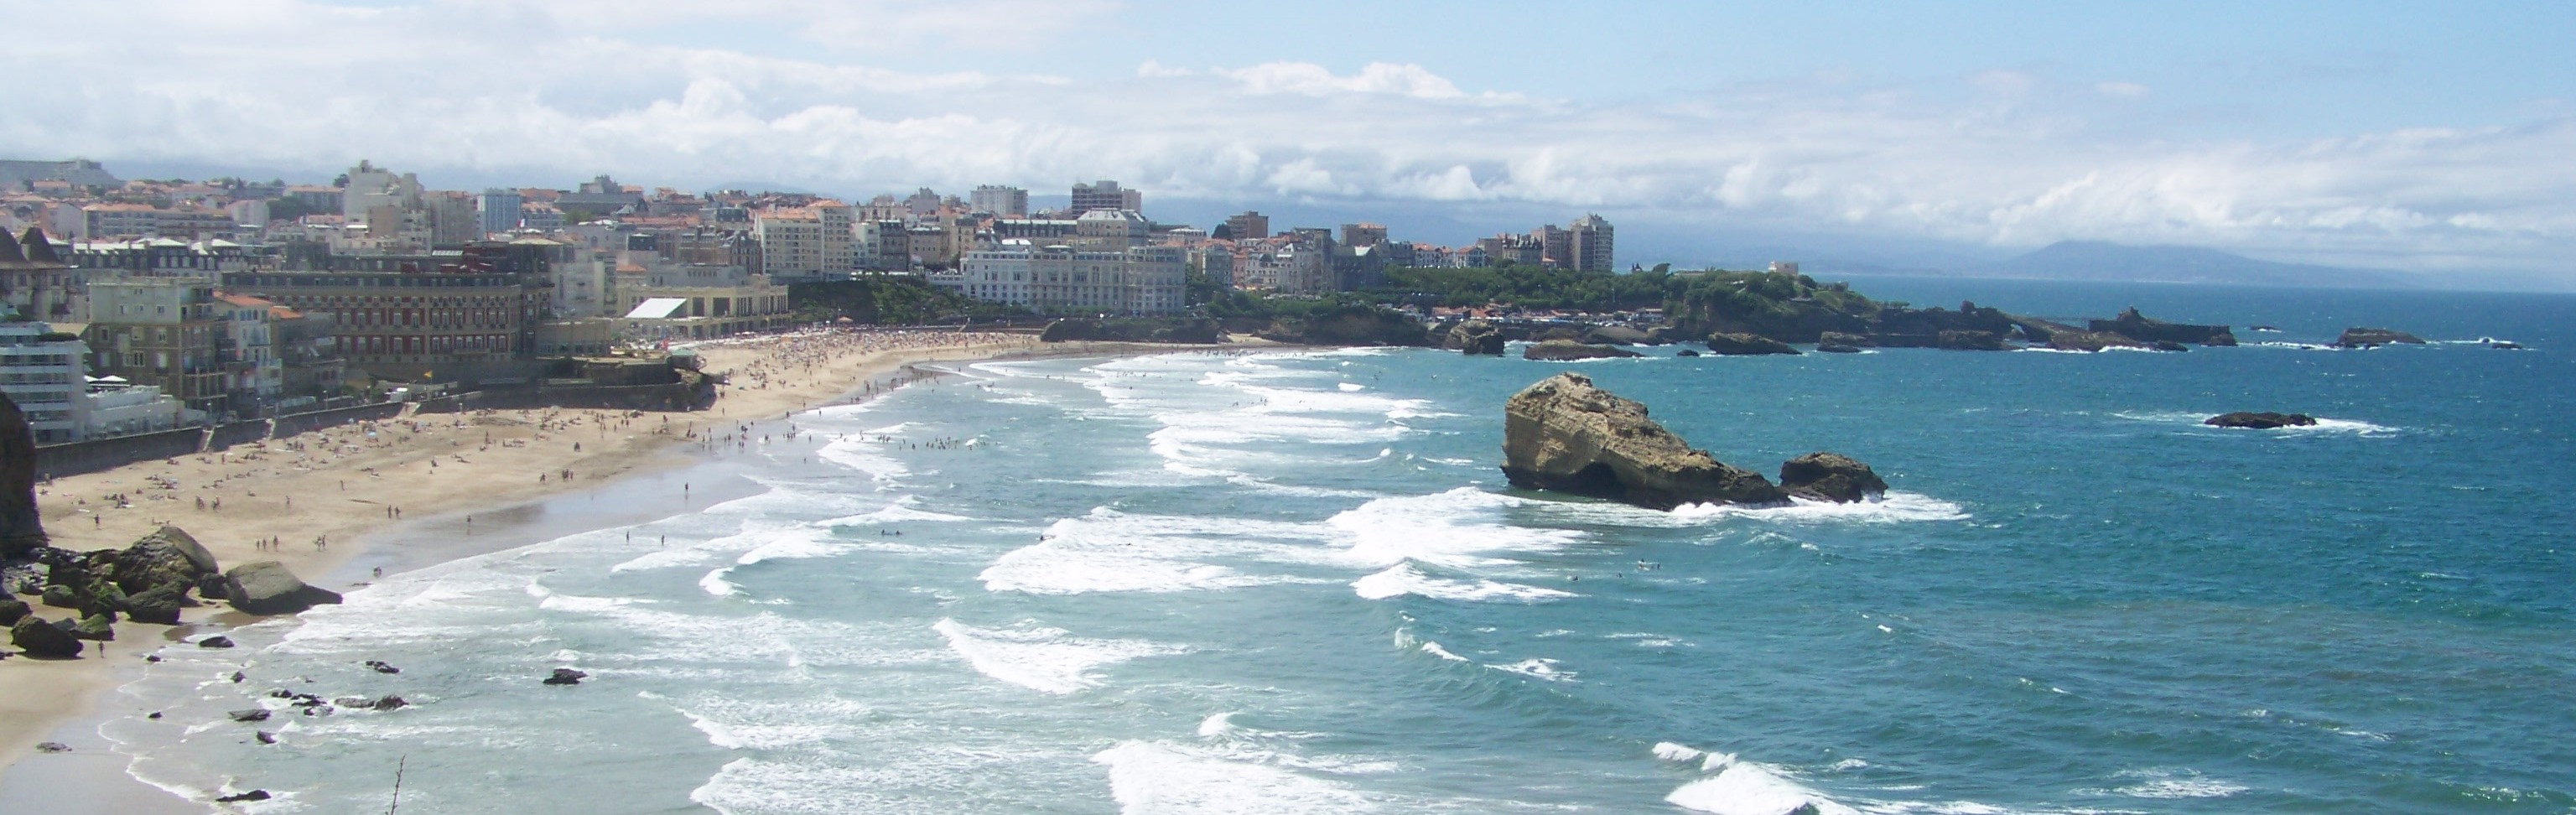 Agence AdWords Biarritz